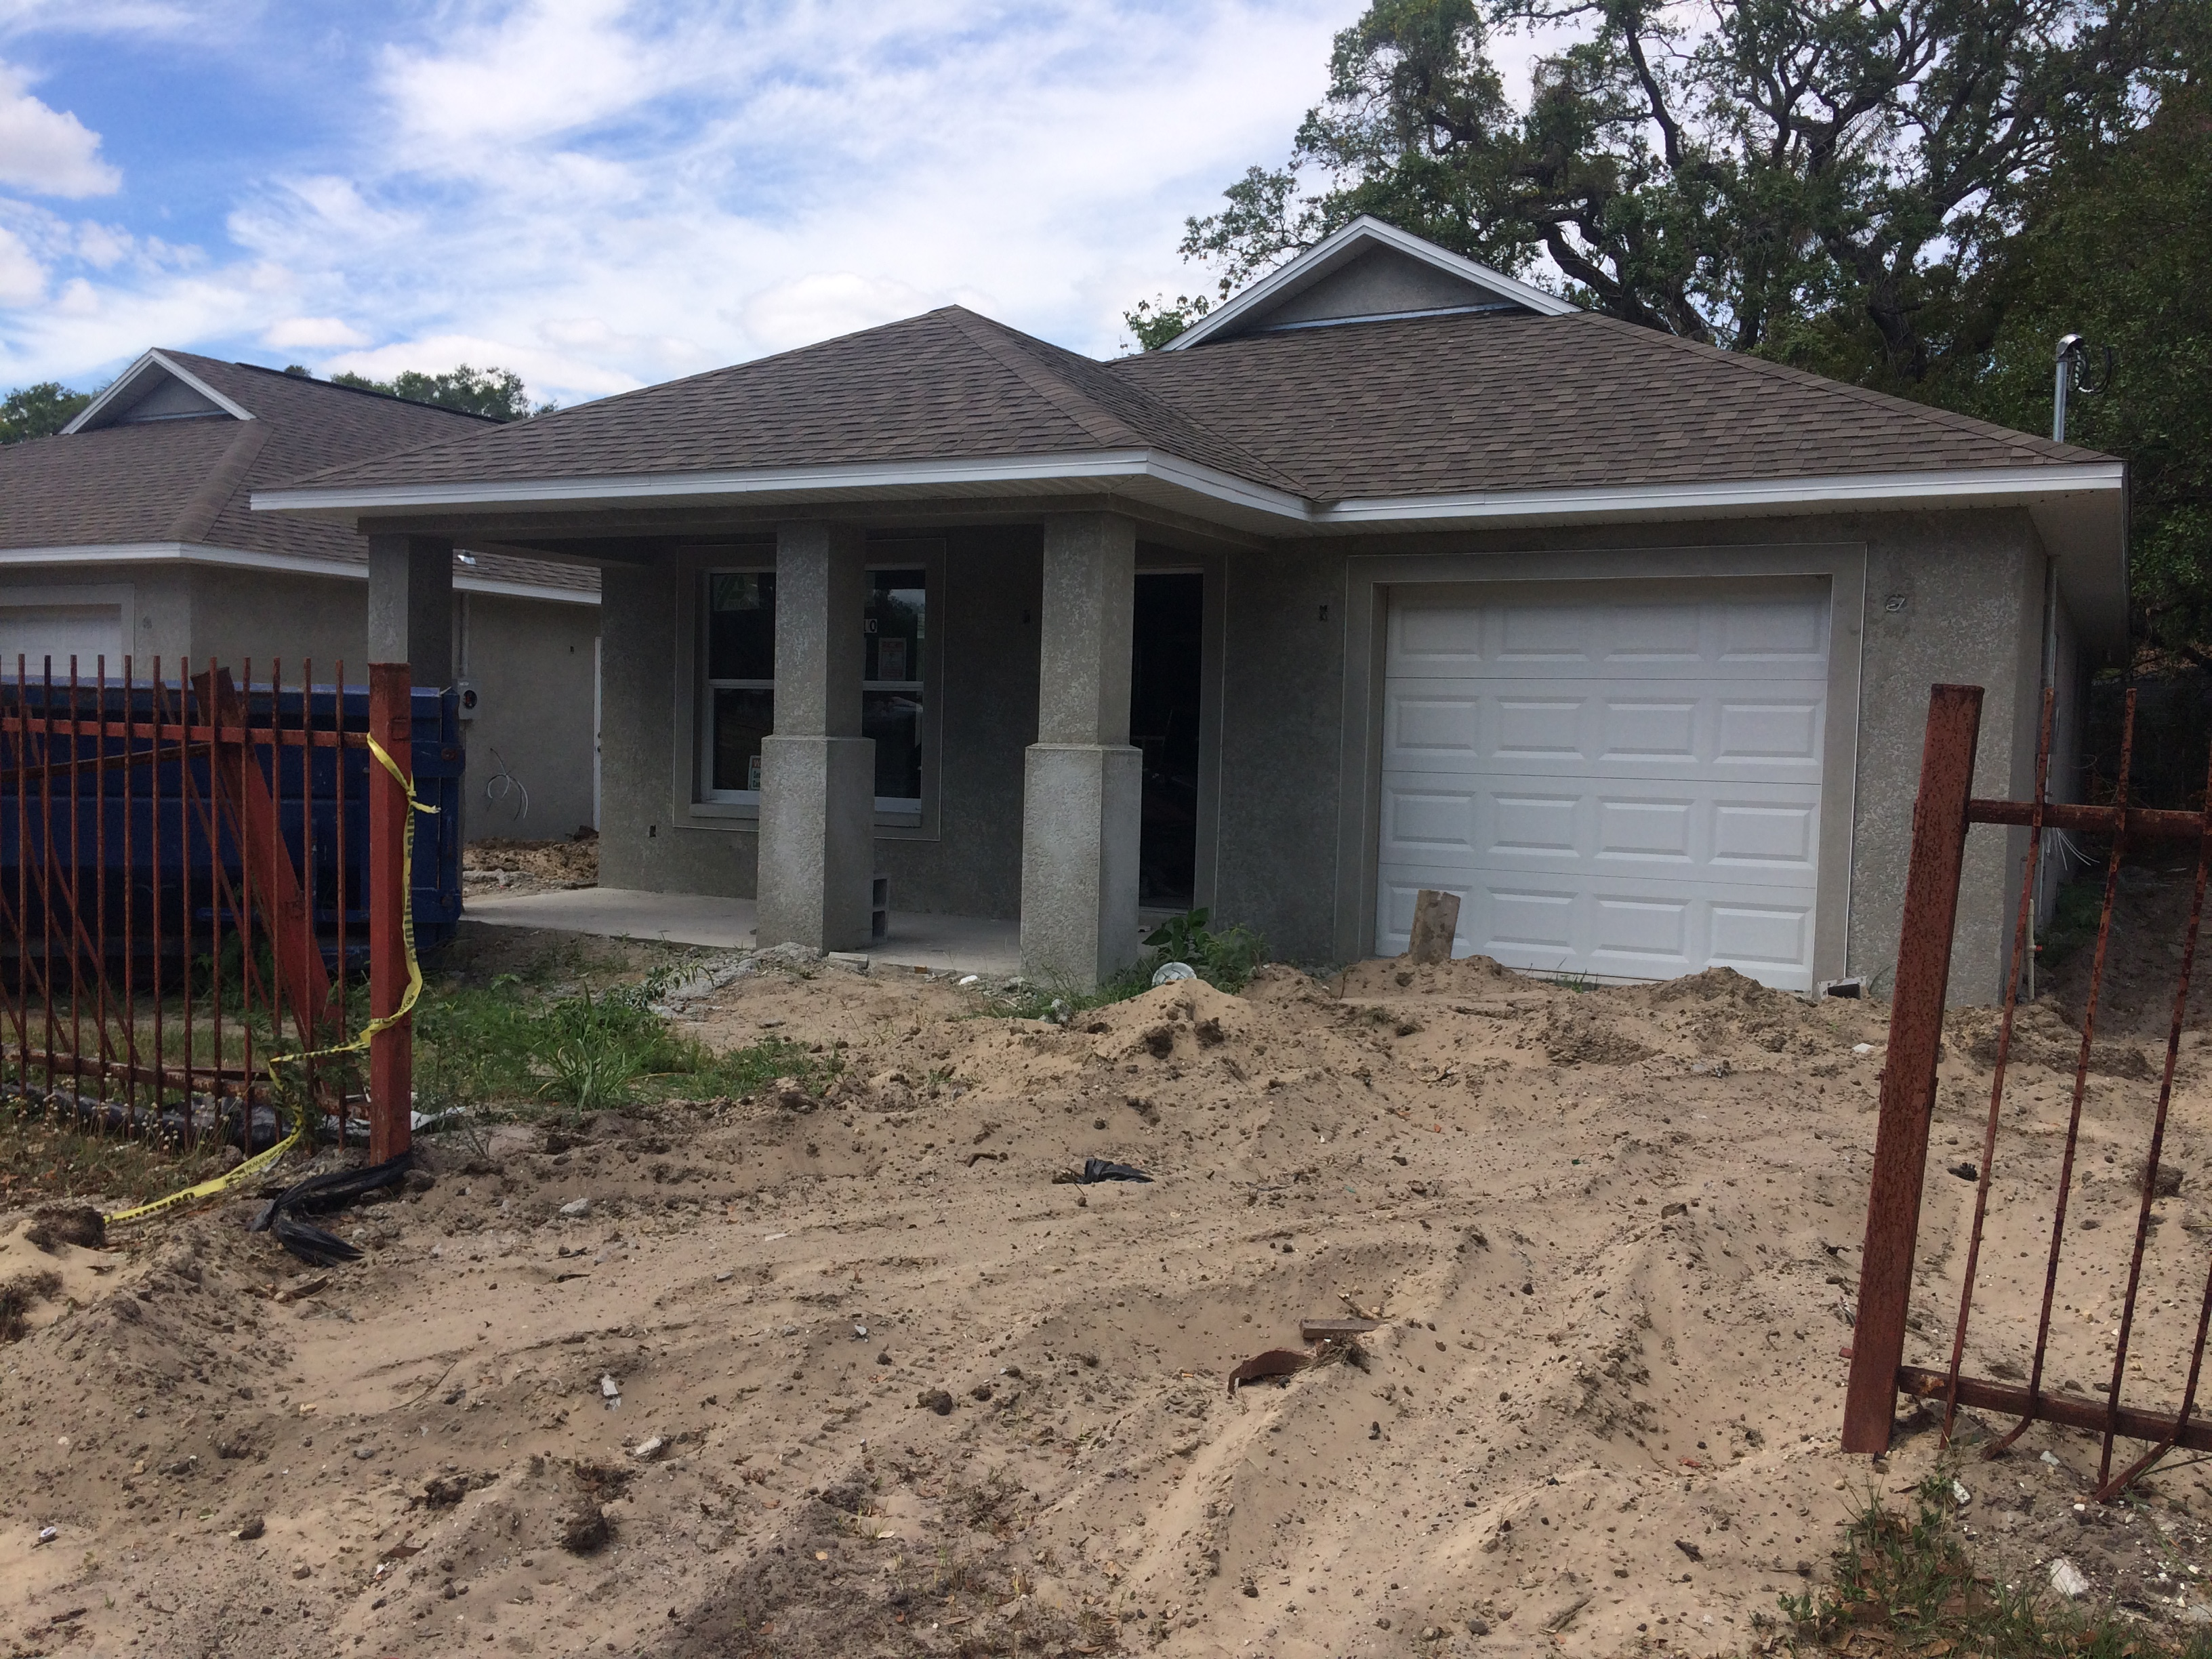 This three-bedroom home is one of 13 being built by the Corporation to Develop Communities of Tampa to bring new housing options to underserved communities